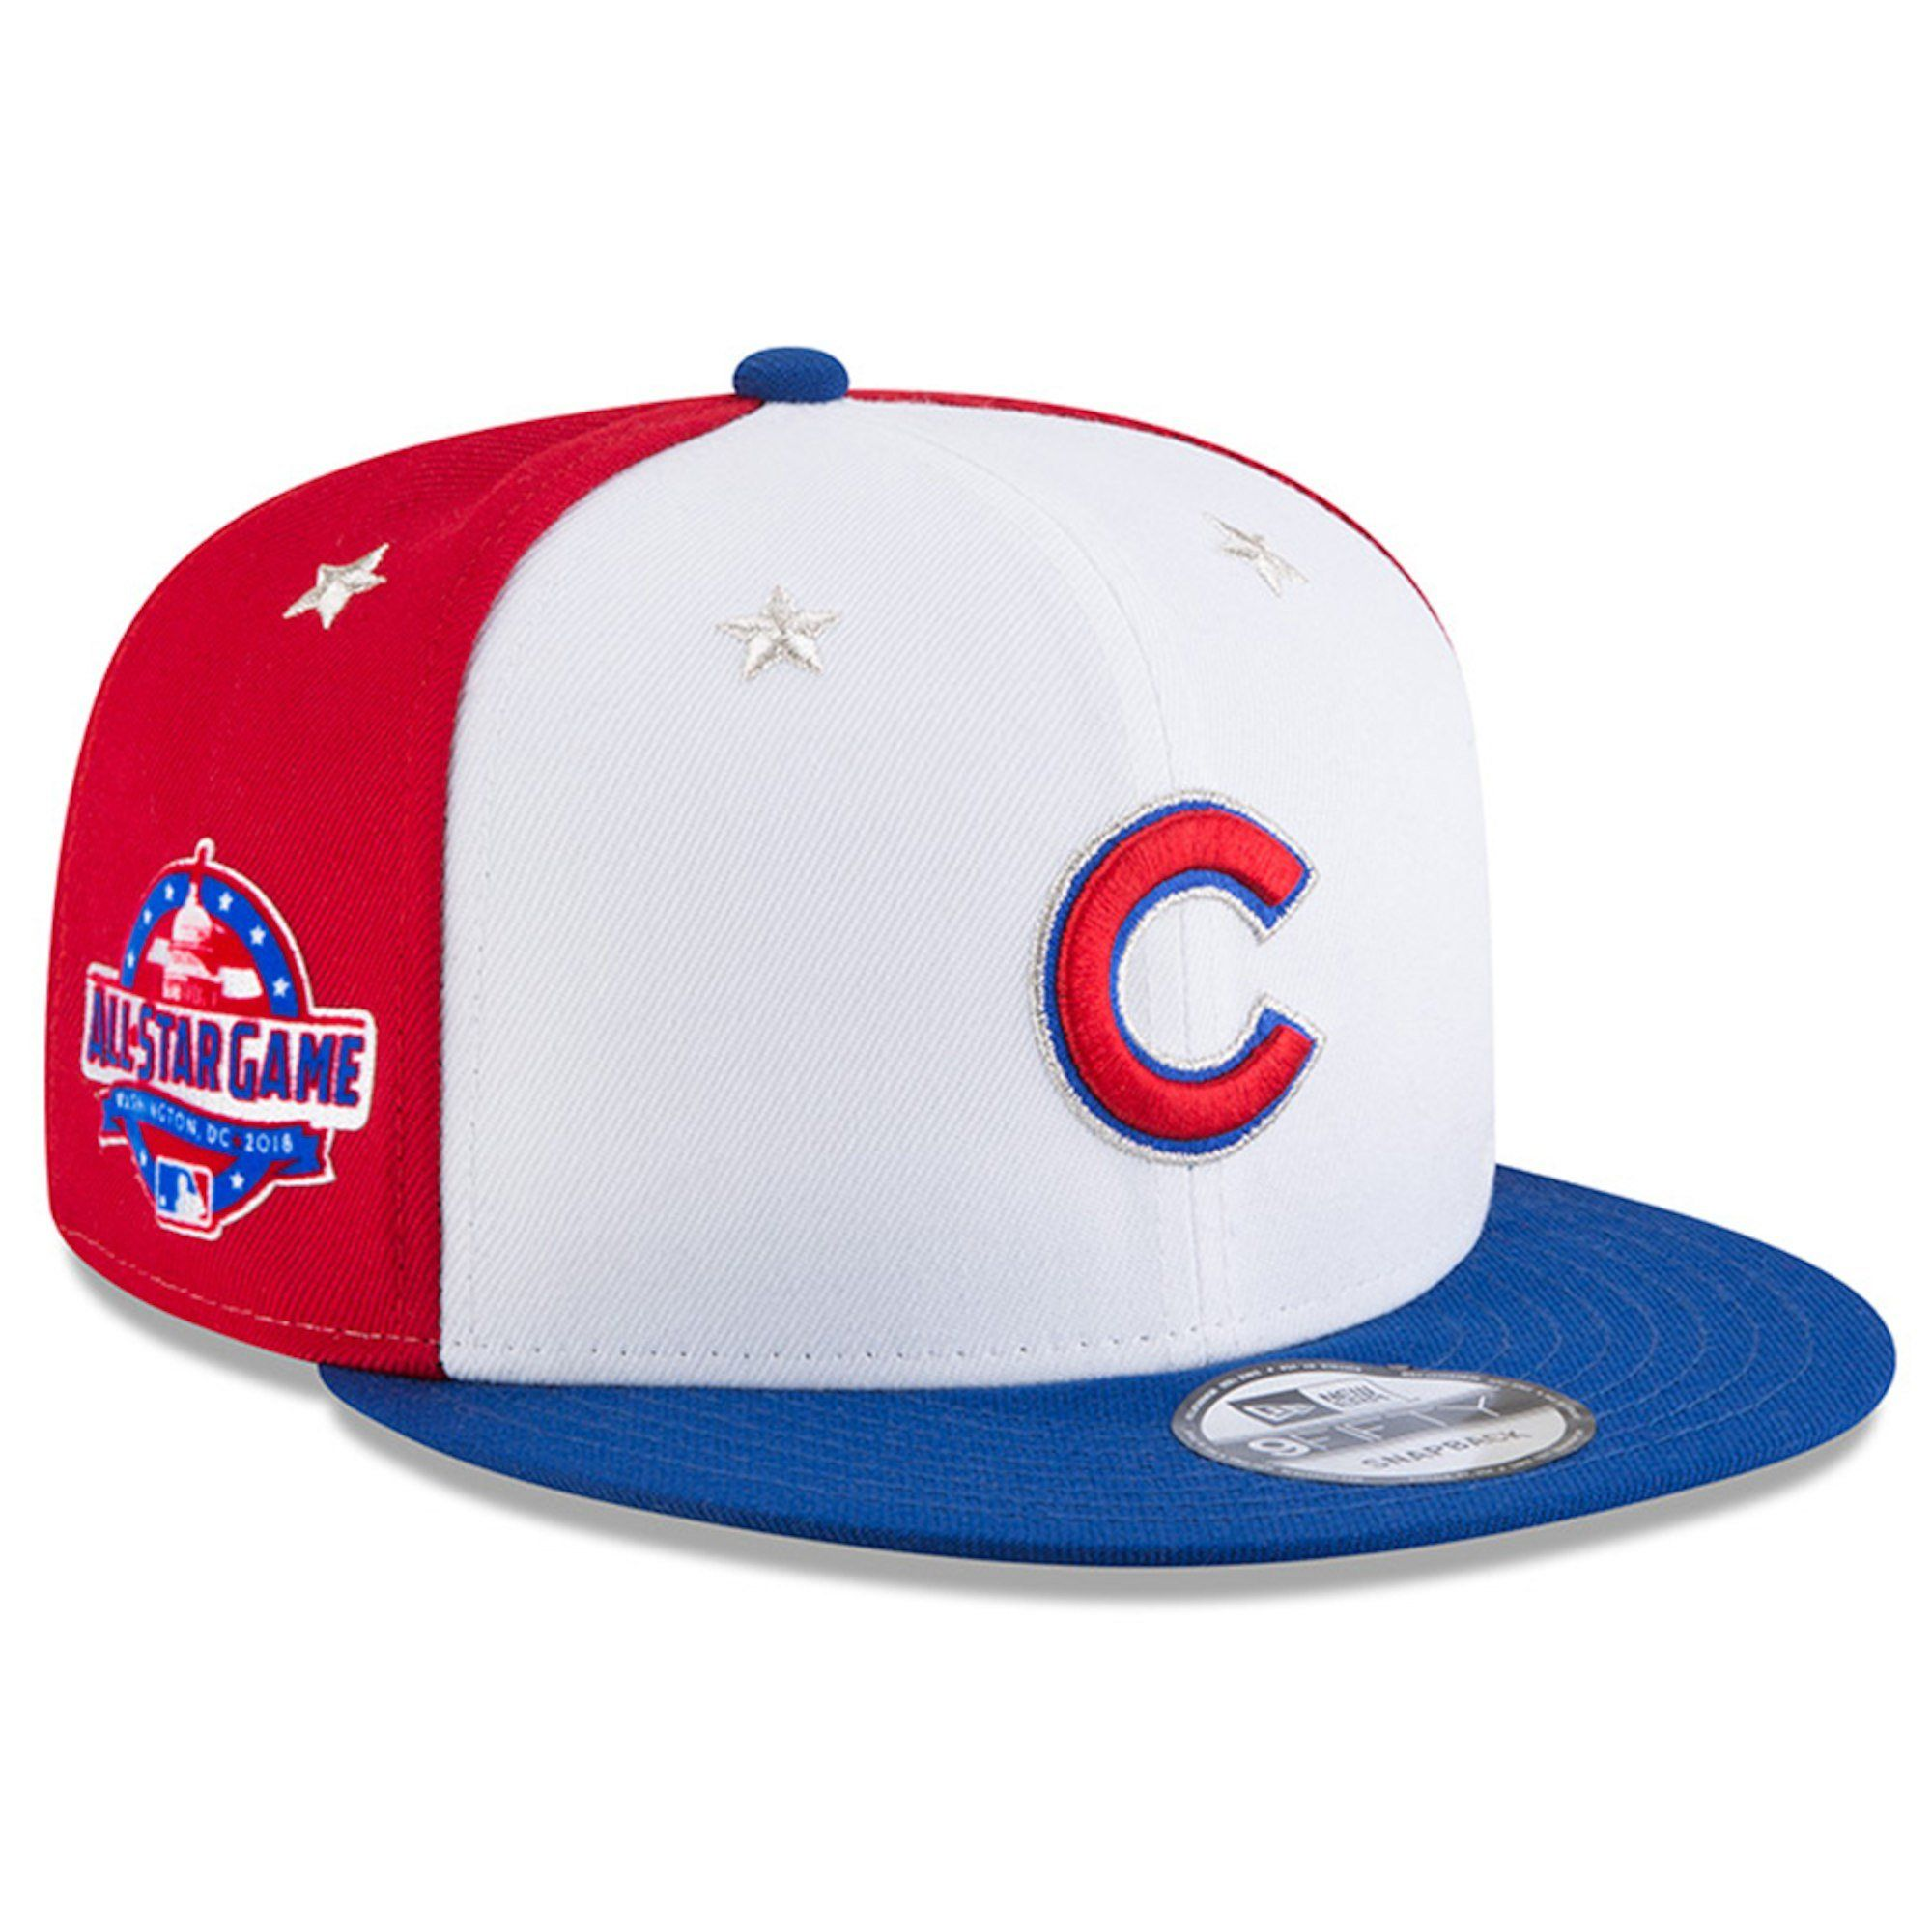 9c85d028540 Chicago Cubs White Royal 2018 MLB All-Star Game 9FIFTY Snapback Adjustable  Hat By New Era